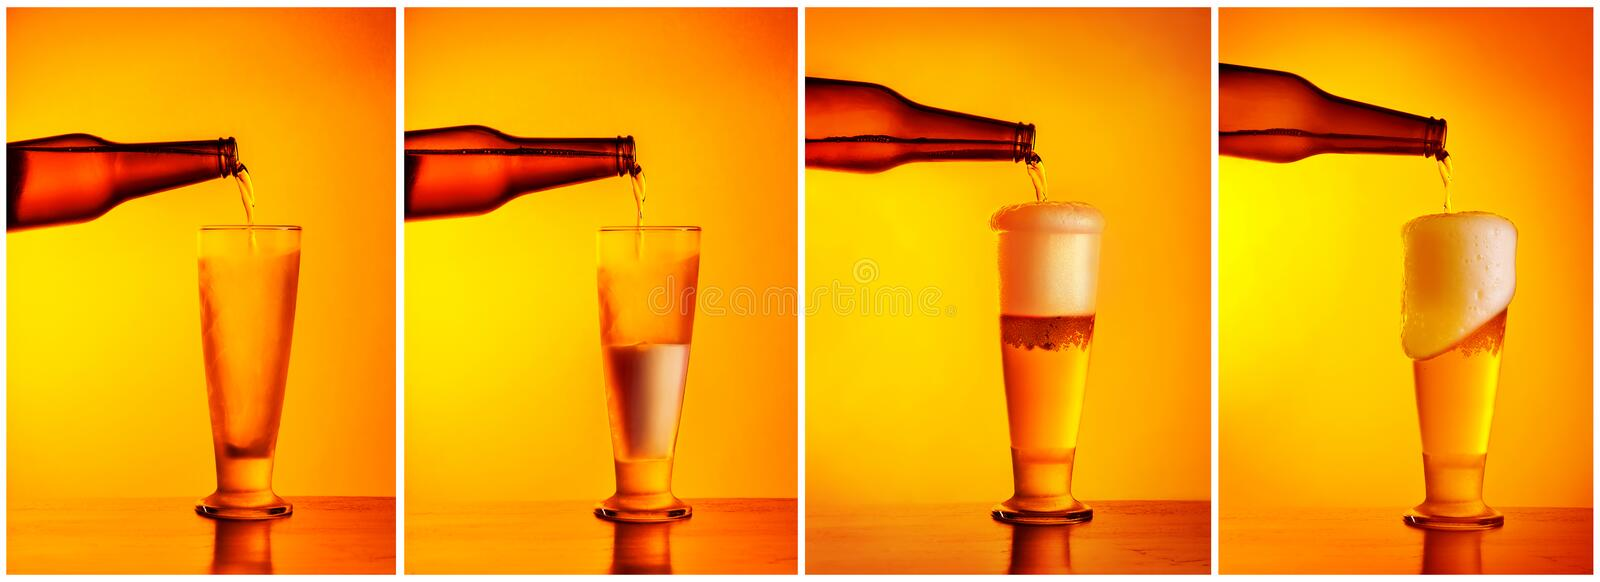 Pouring beer sequence collage. Four photos of a beer glass, refill concept, pub menu, oktoberfest holiday still life royalty free stock photos